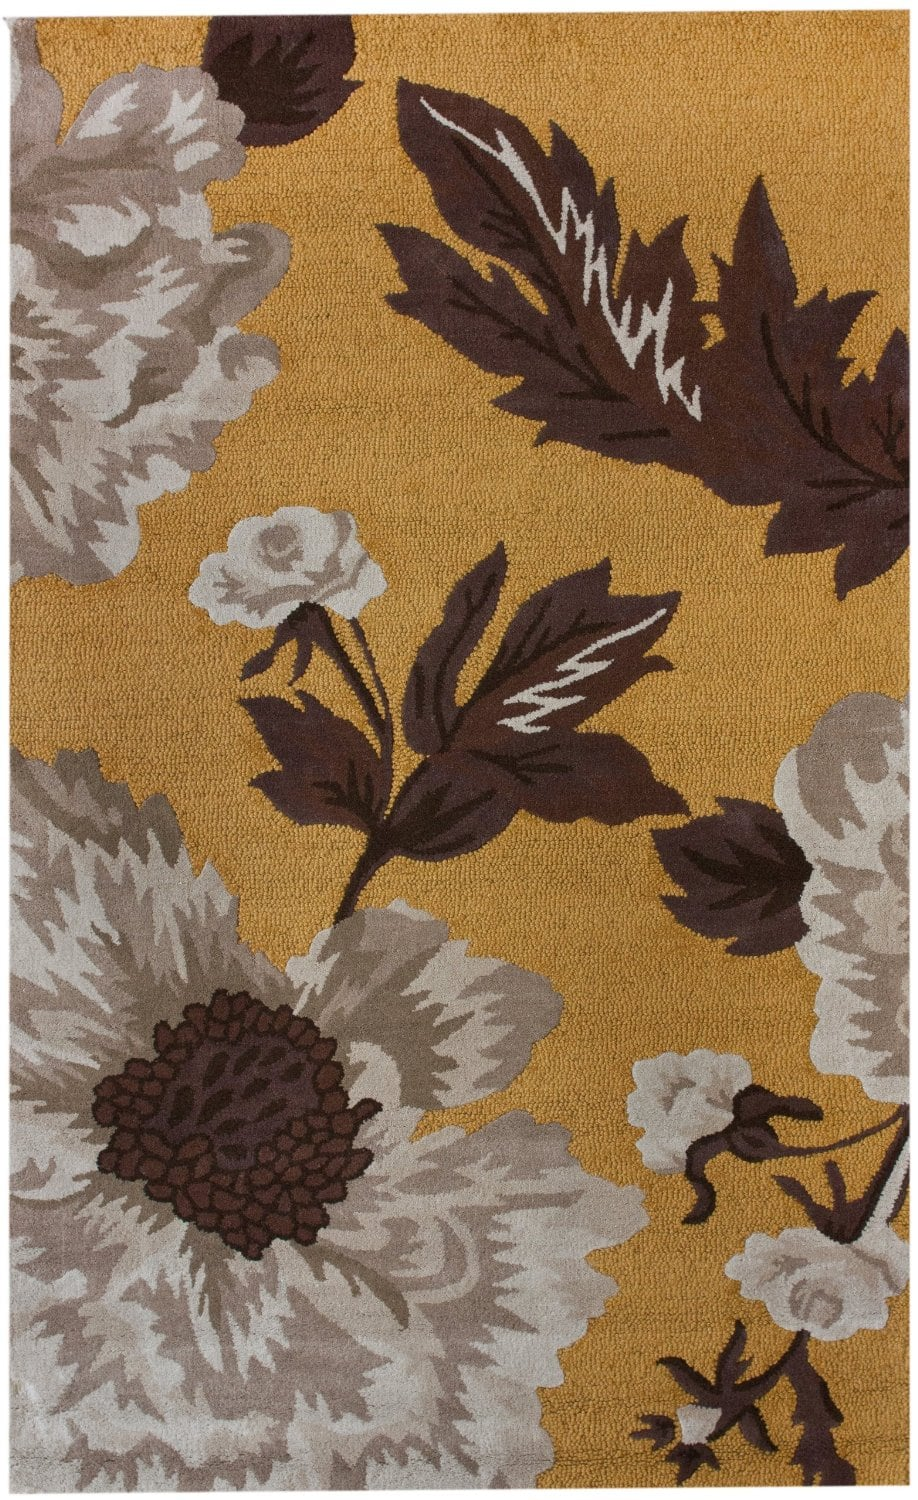 nuLOOM 5' x 8' Wool Area Rug (various styles)  From $34.50